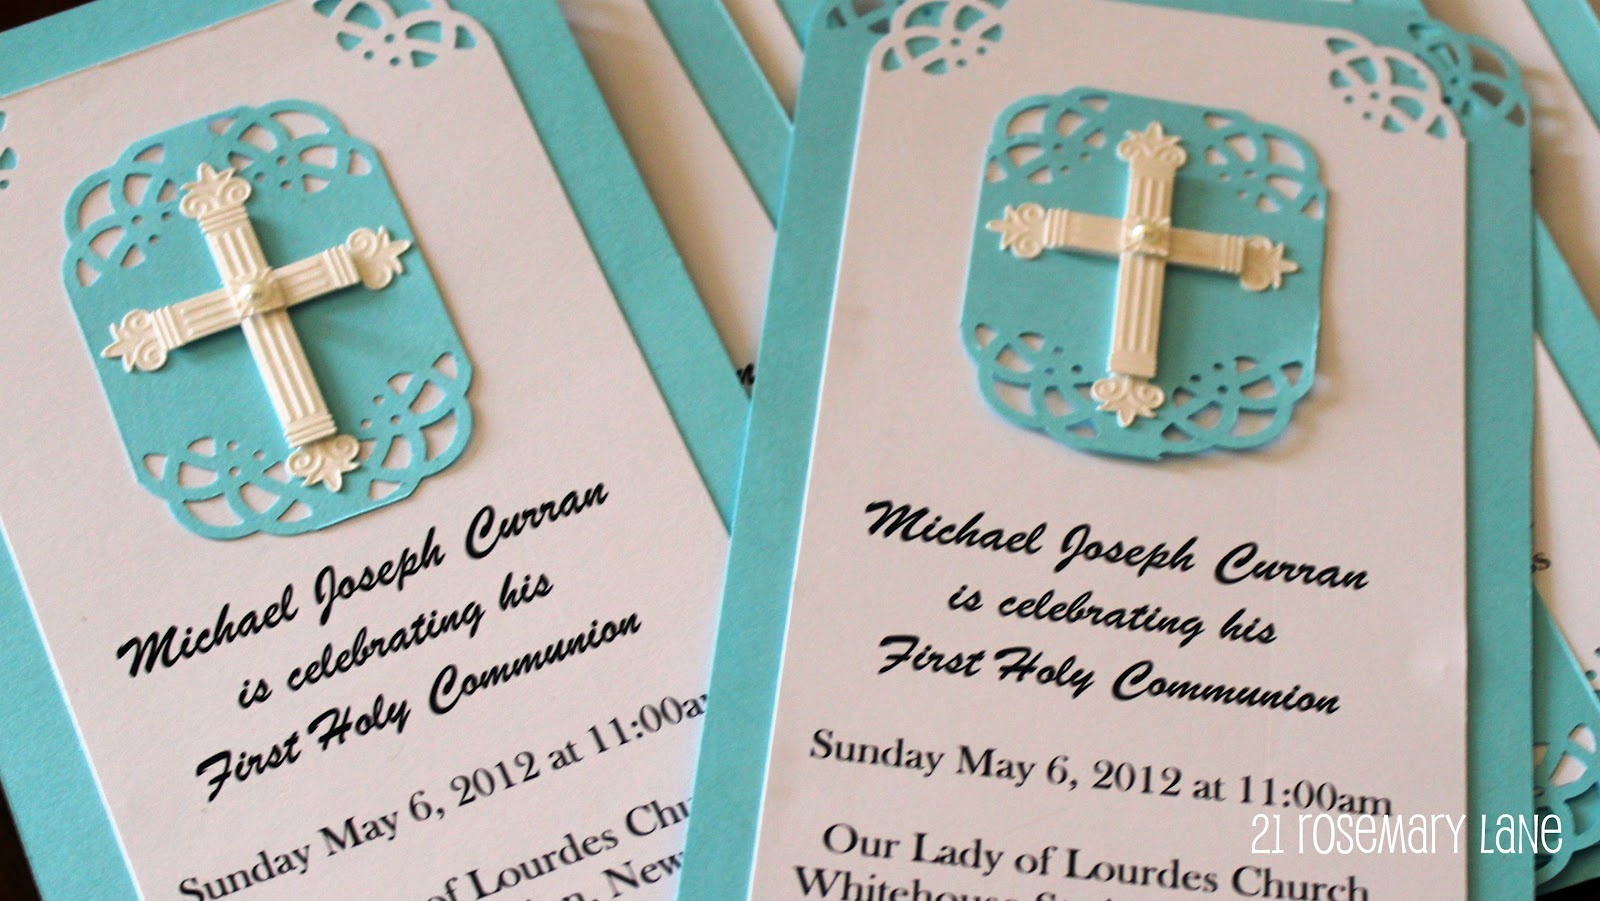 21 rosemary lane handmade first communion invitations with tutorial 41612 solutioingenieria Choice Image